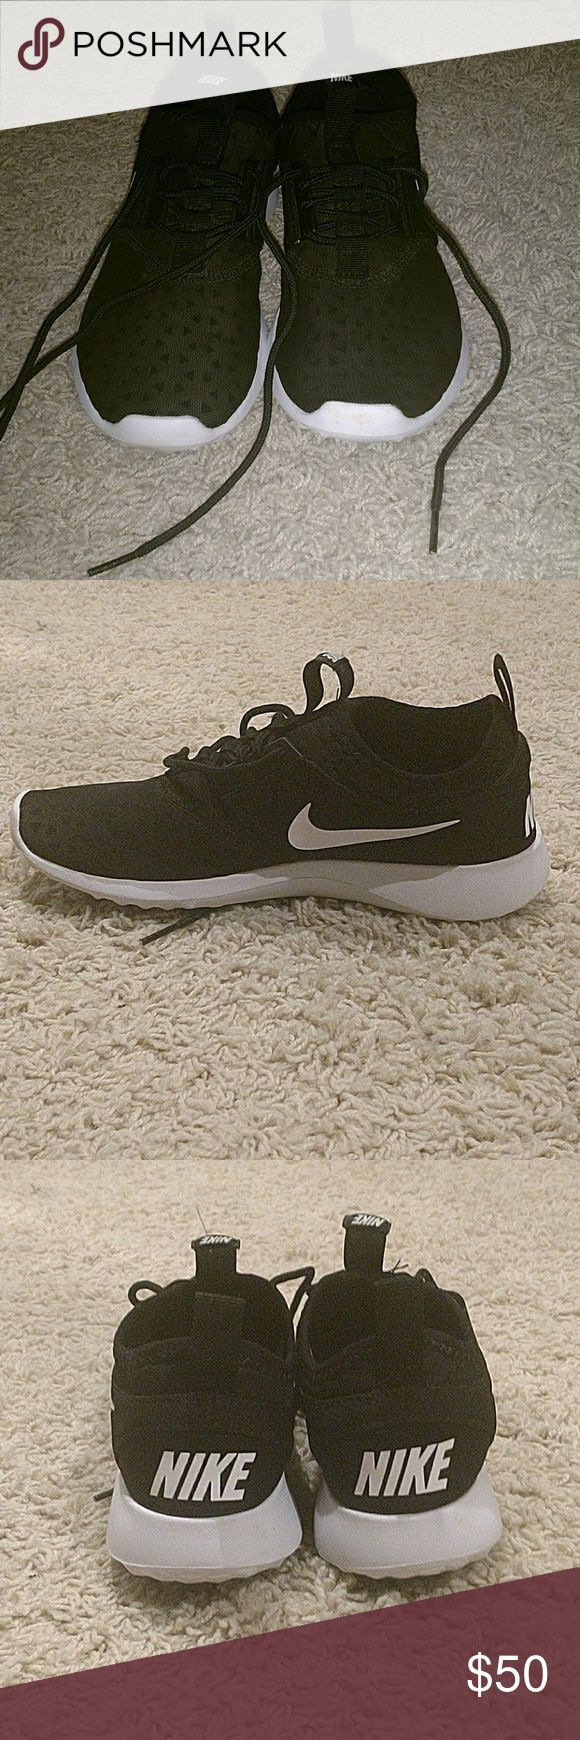 Nike Workout Shoes Fairly new, I only wore them maybe about 8 times. They still smell new. They are not running shoes, they are workout and training gym shoes. They are a size 6.5. Nike Shoes Athletic Shoes